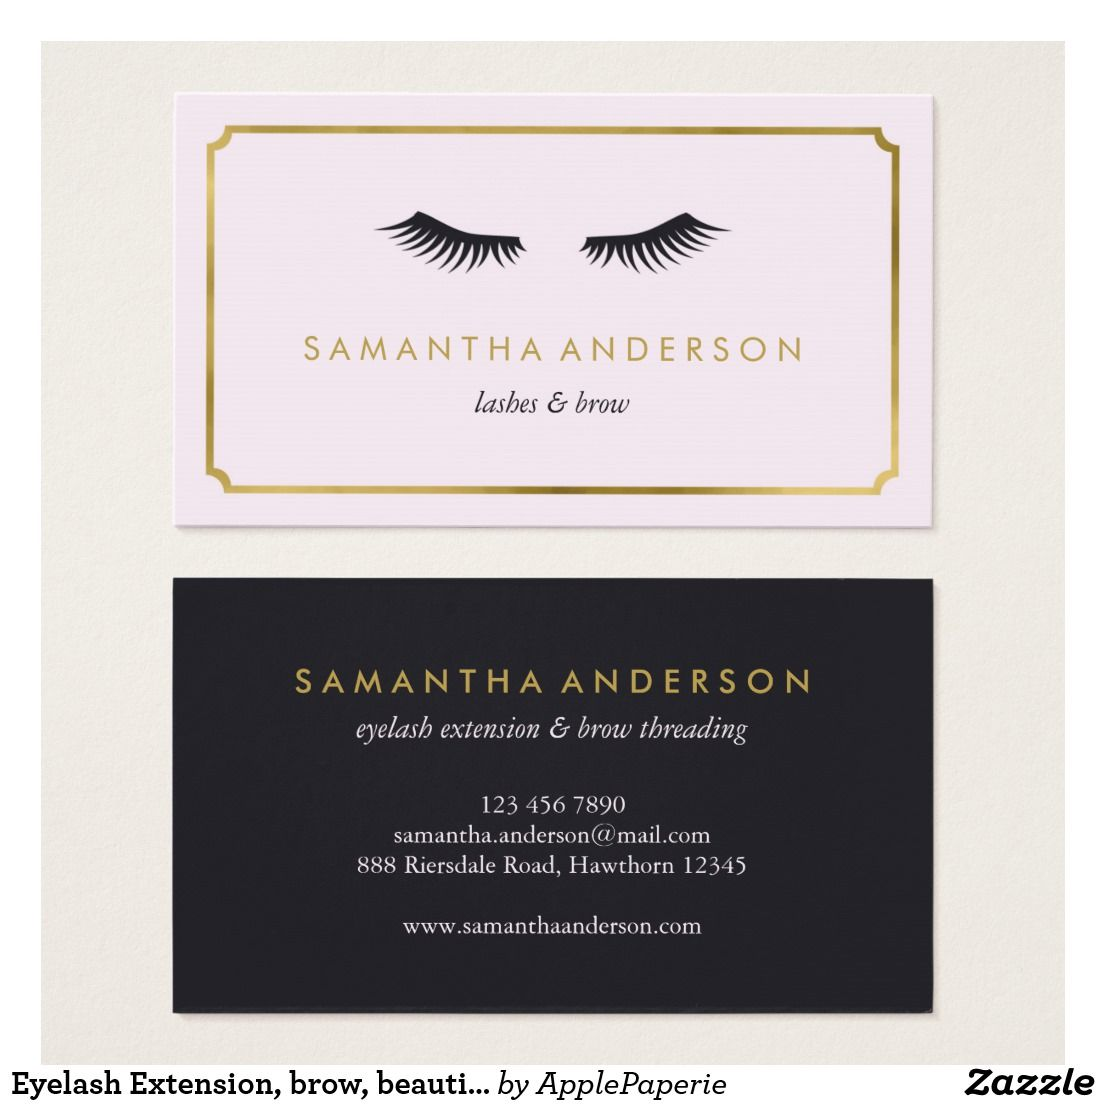 Eyelash extension brow beautician business cards business eyelash extension brow beautician business cards colourmoves